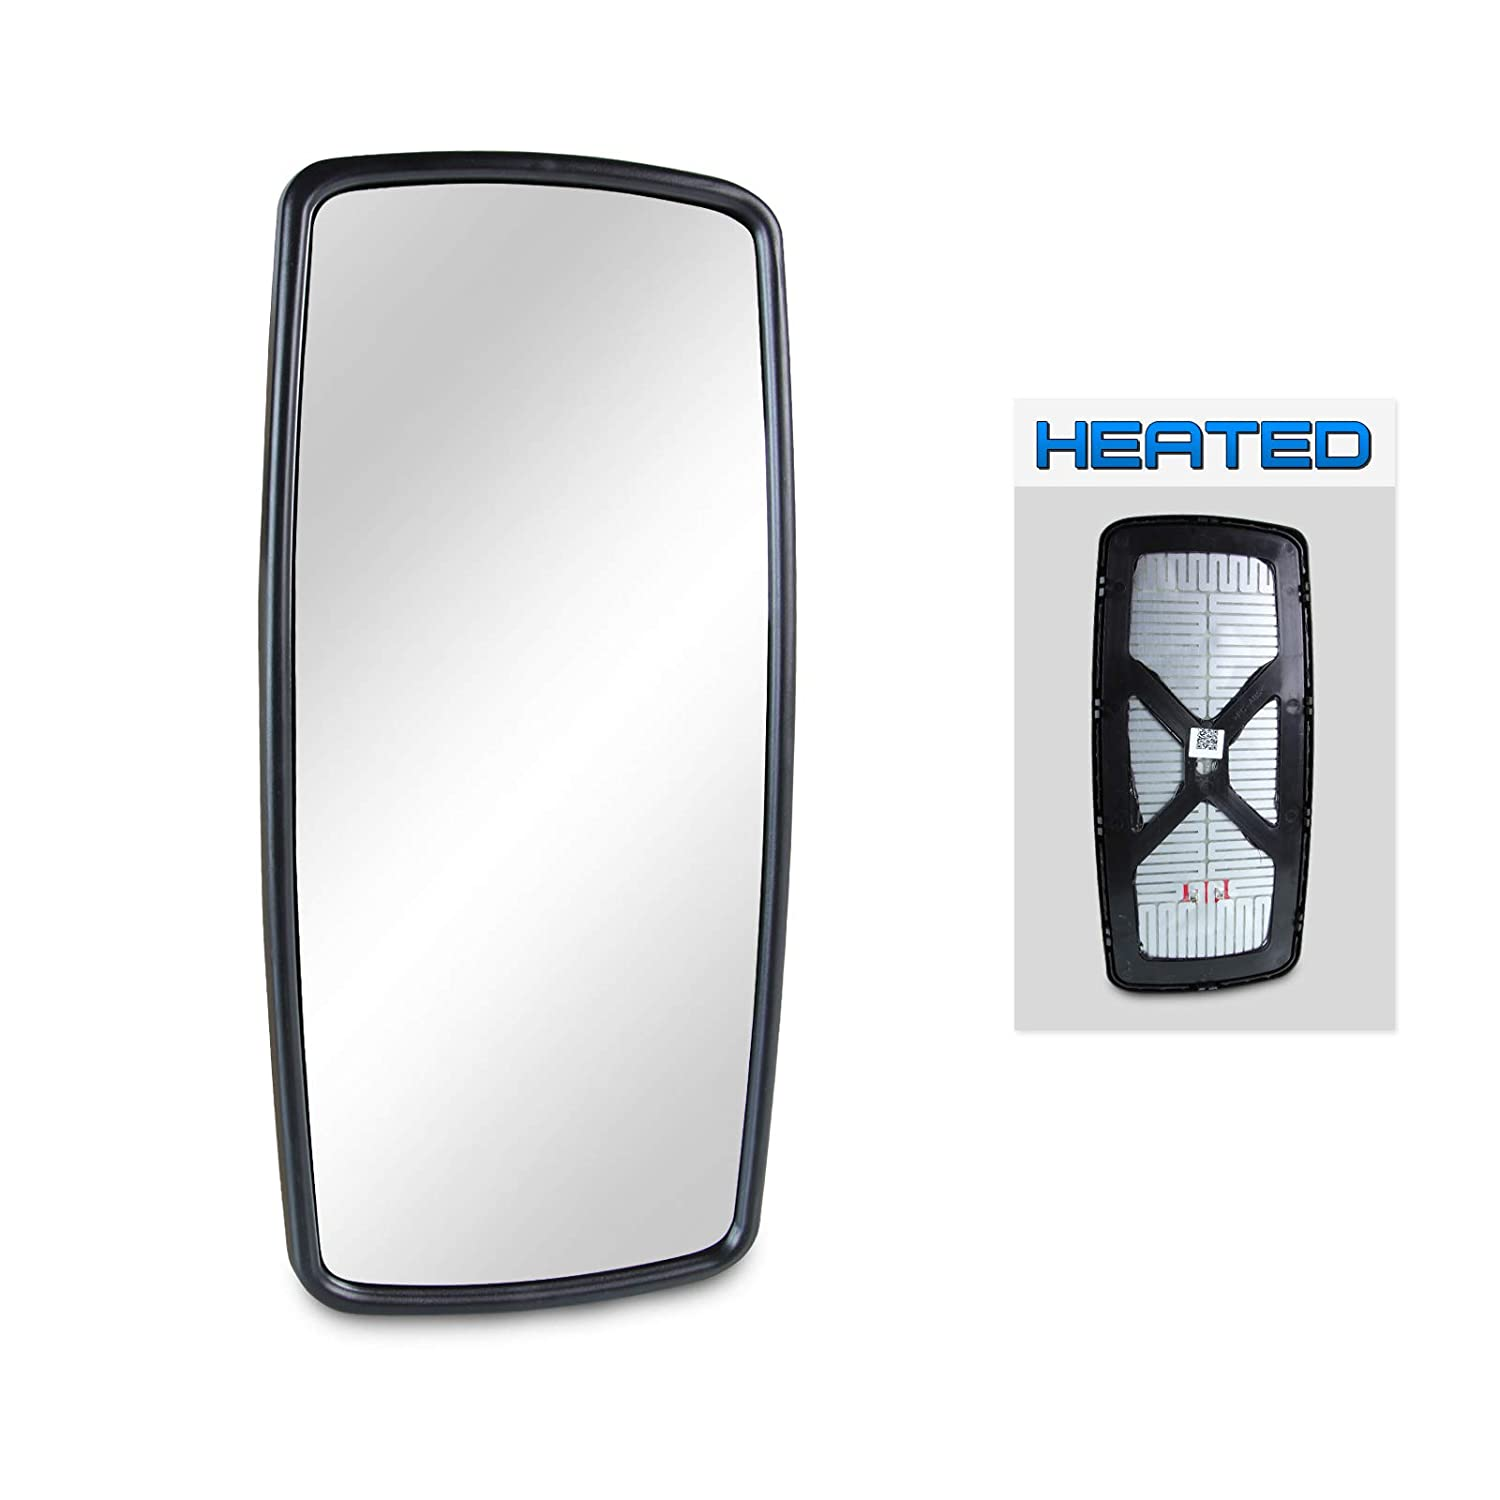 Optix 1pc P.RA 2003-2006 Freightliner Columbia Side View Mirror Replacement Heated 2003-2017 Freightliner M2 Heated Main Mirror Glass